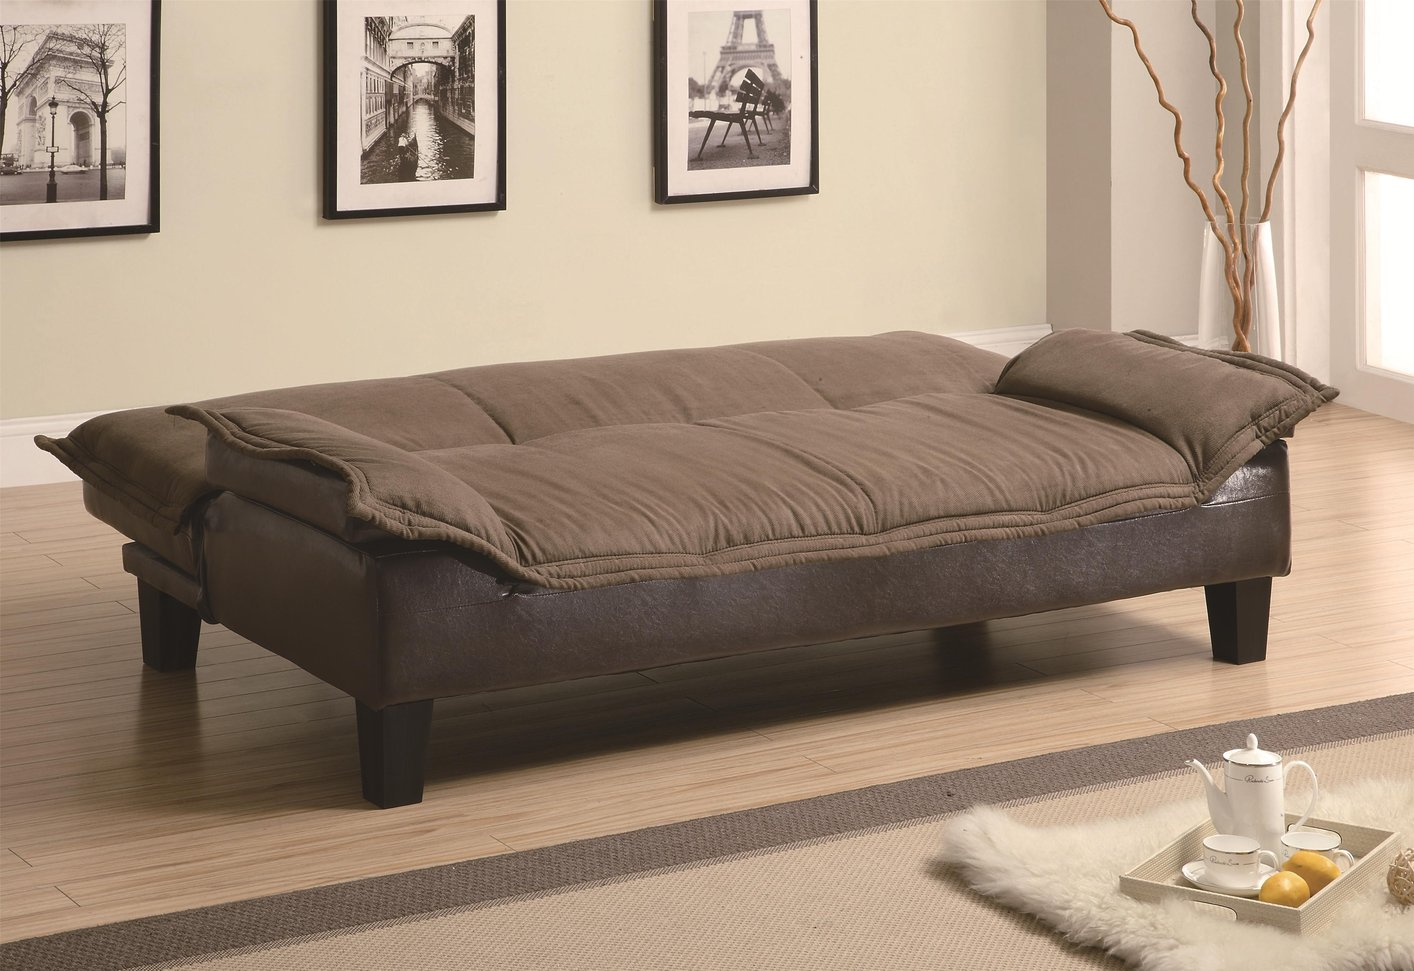 Coaster 300301 brown fabric sofa bed steal a sofa for Sofa bed outlet